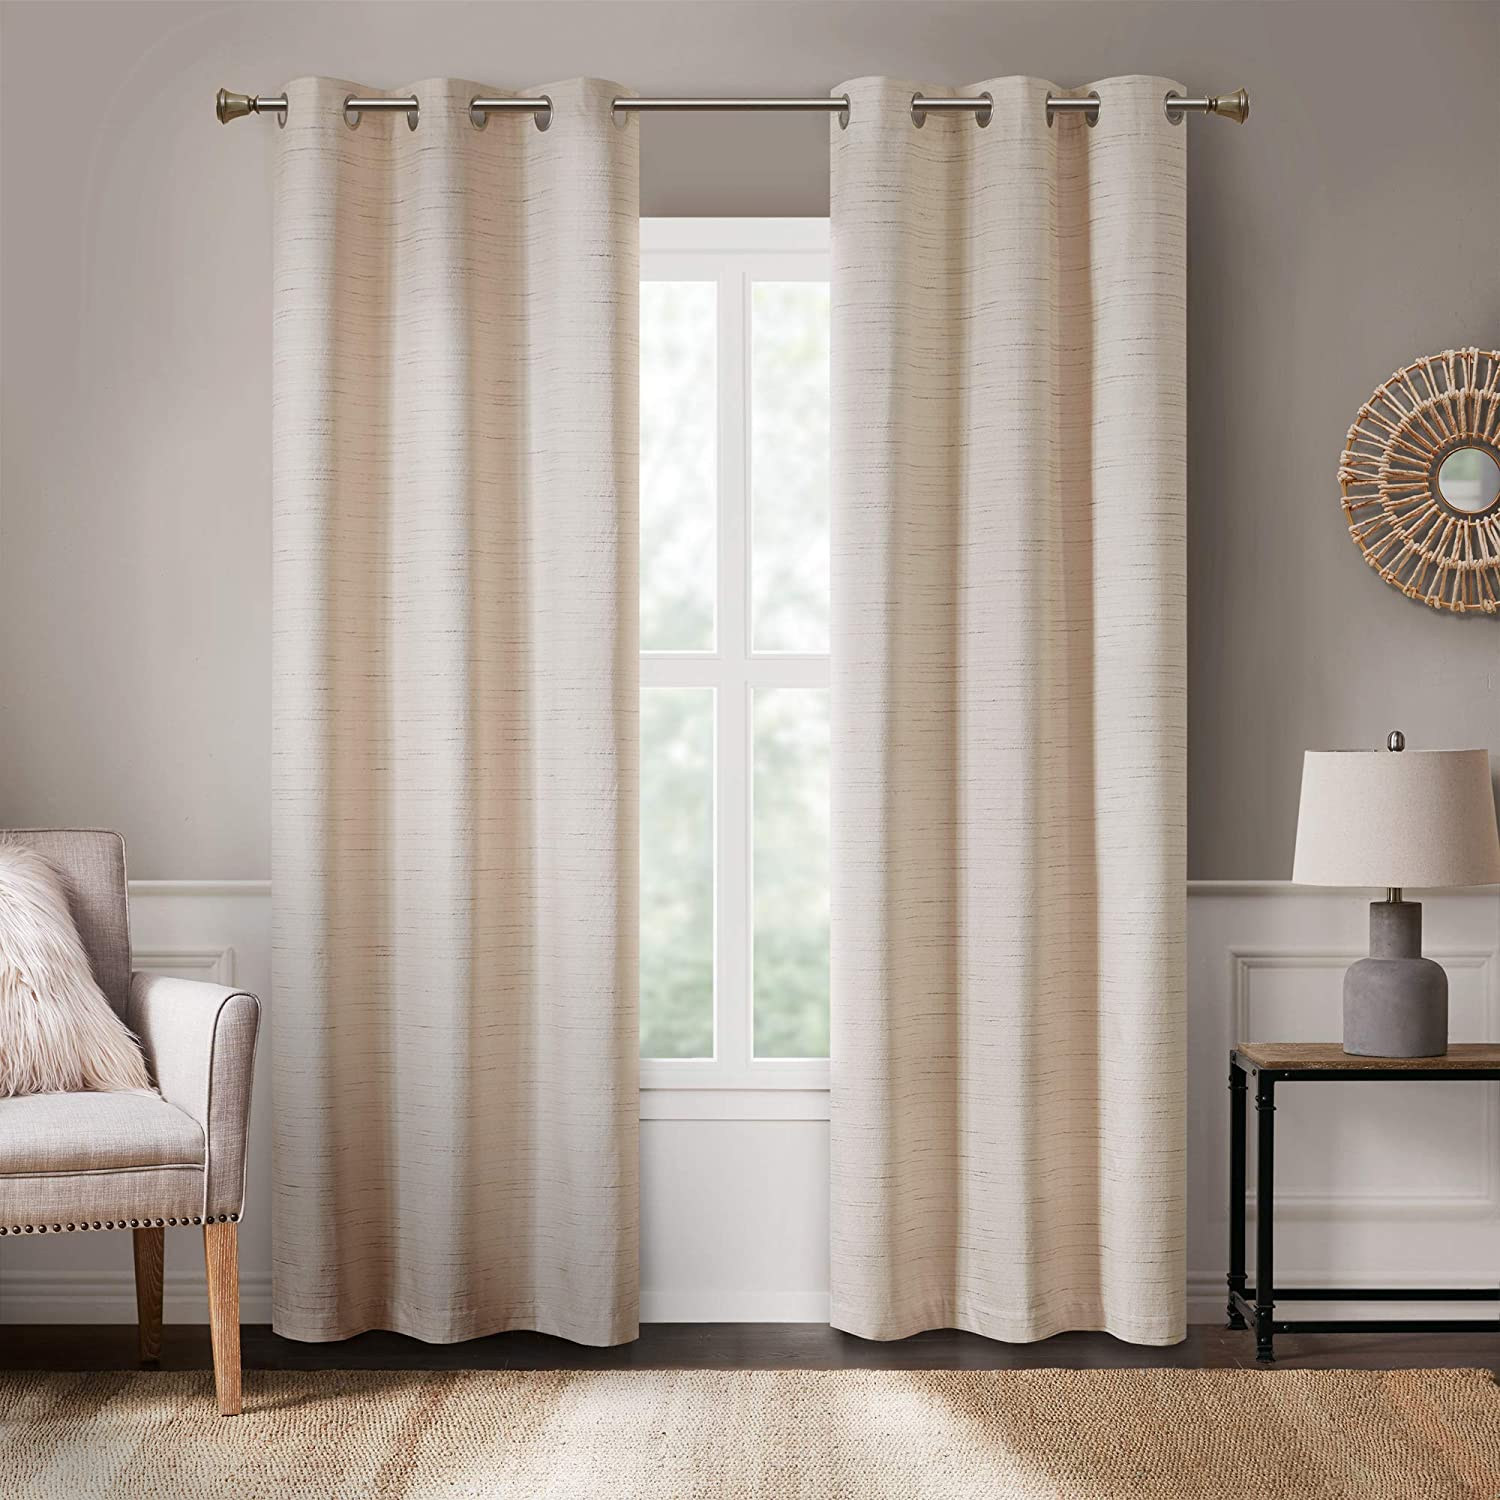 Amazon Com Hyde Lane Modern Farmhouse Curtains For Living Room Rustic Style Bedroom Window Treatments Grasscloth Faux Linen Grommet Top For Sliding Door Yellow Ivory 40x84 Inches 2 Panels Kitchen Dining